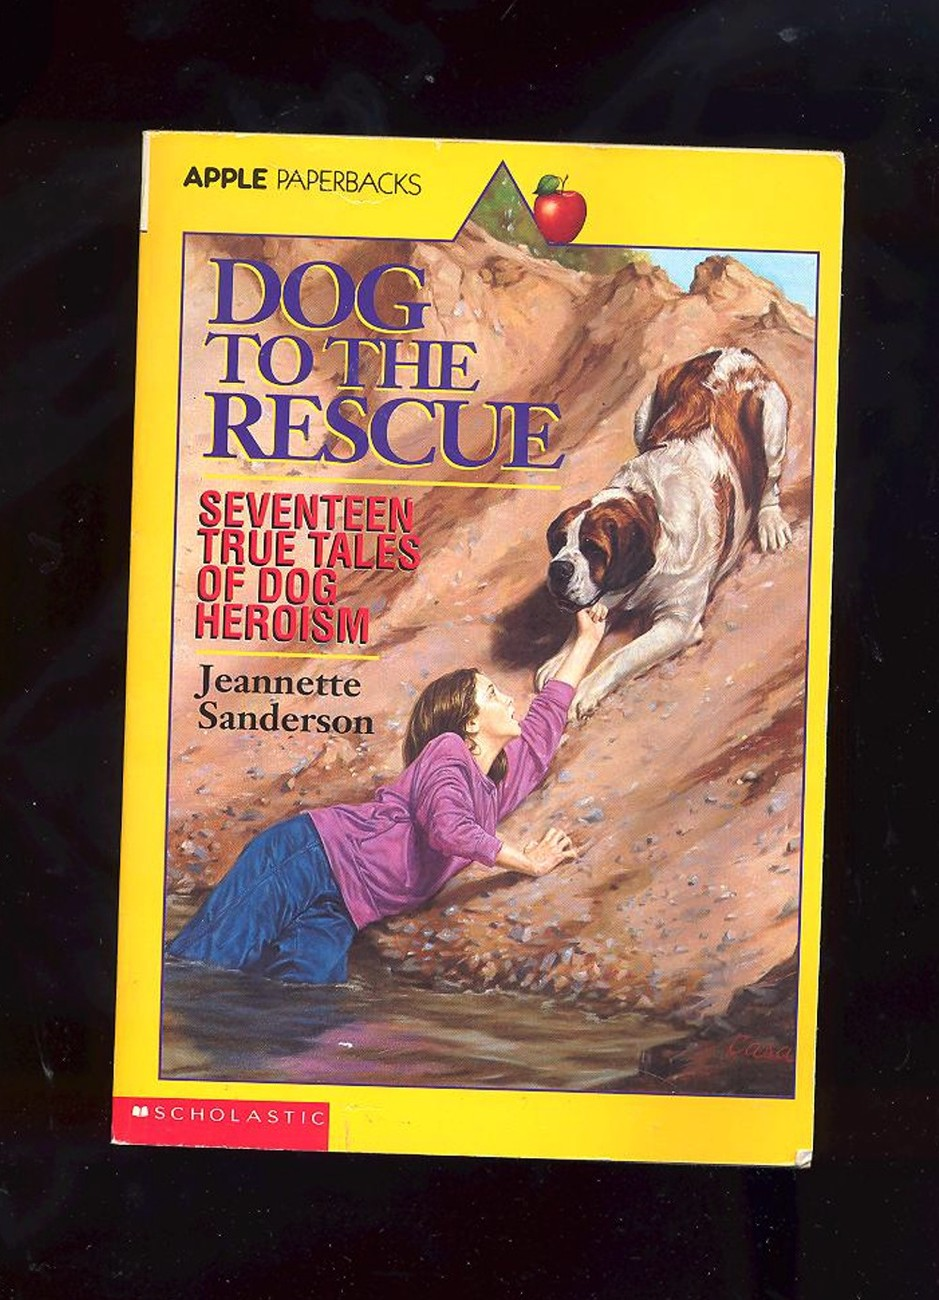 Primary image for Dog To The Rescue by Jeannette Sanderson